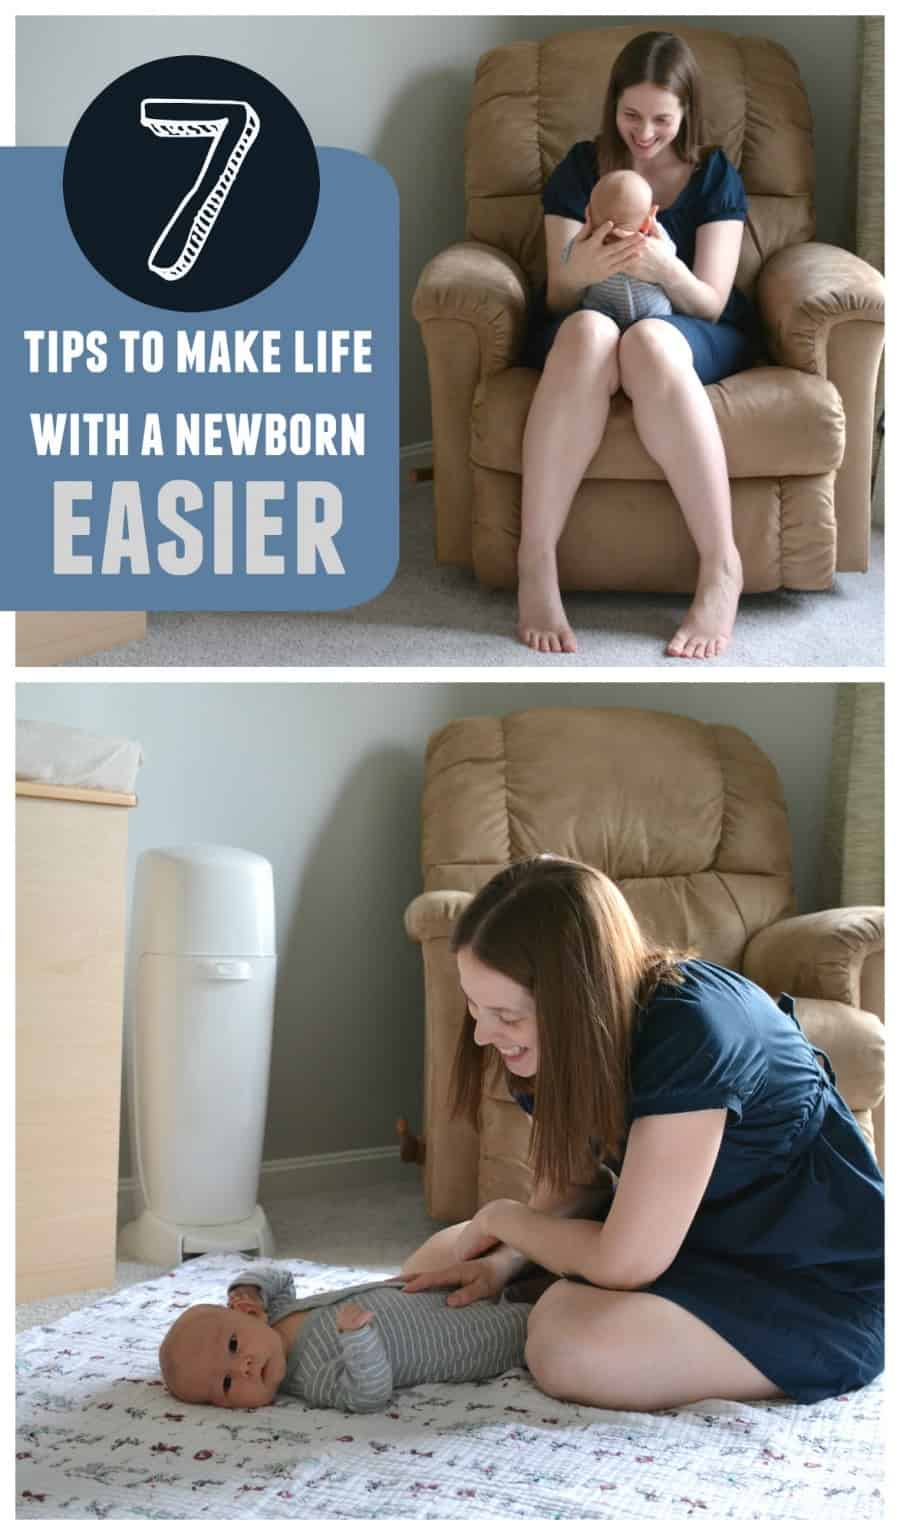 tips to make life with a newborn easier